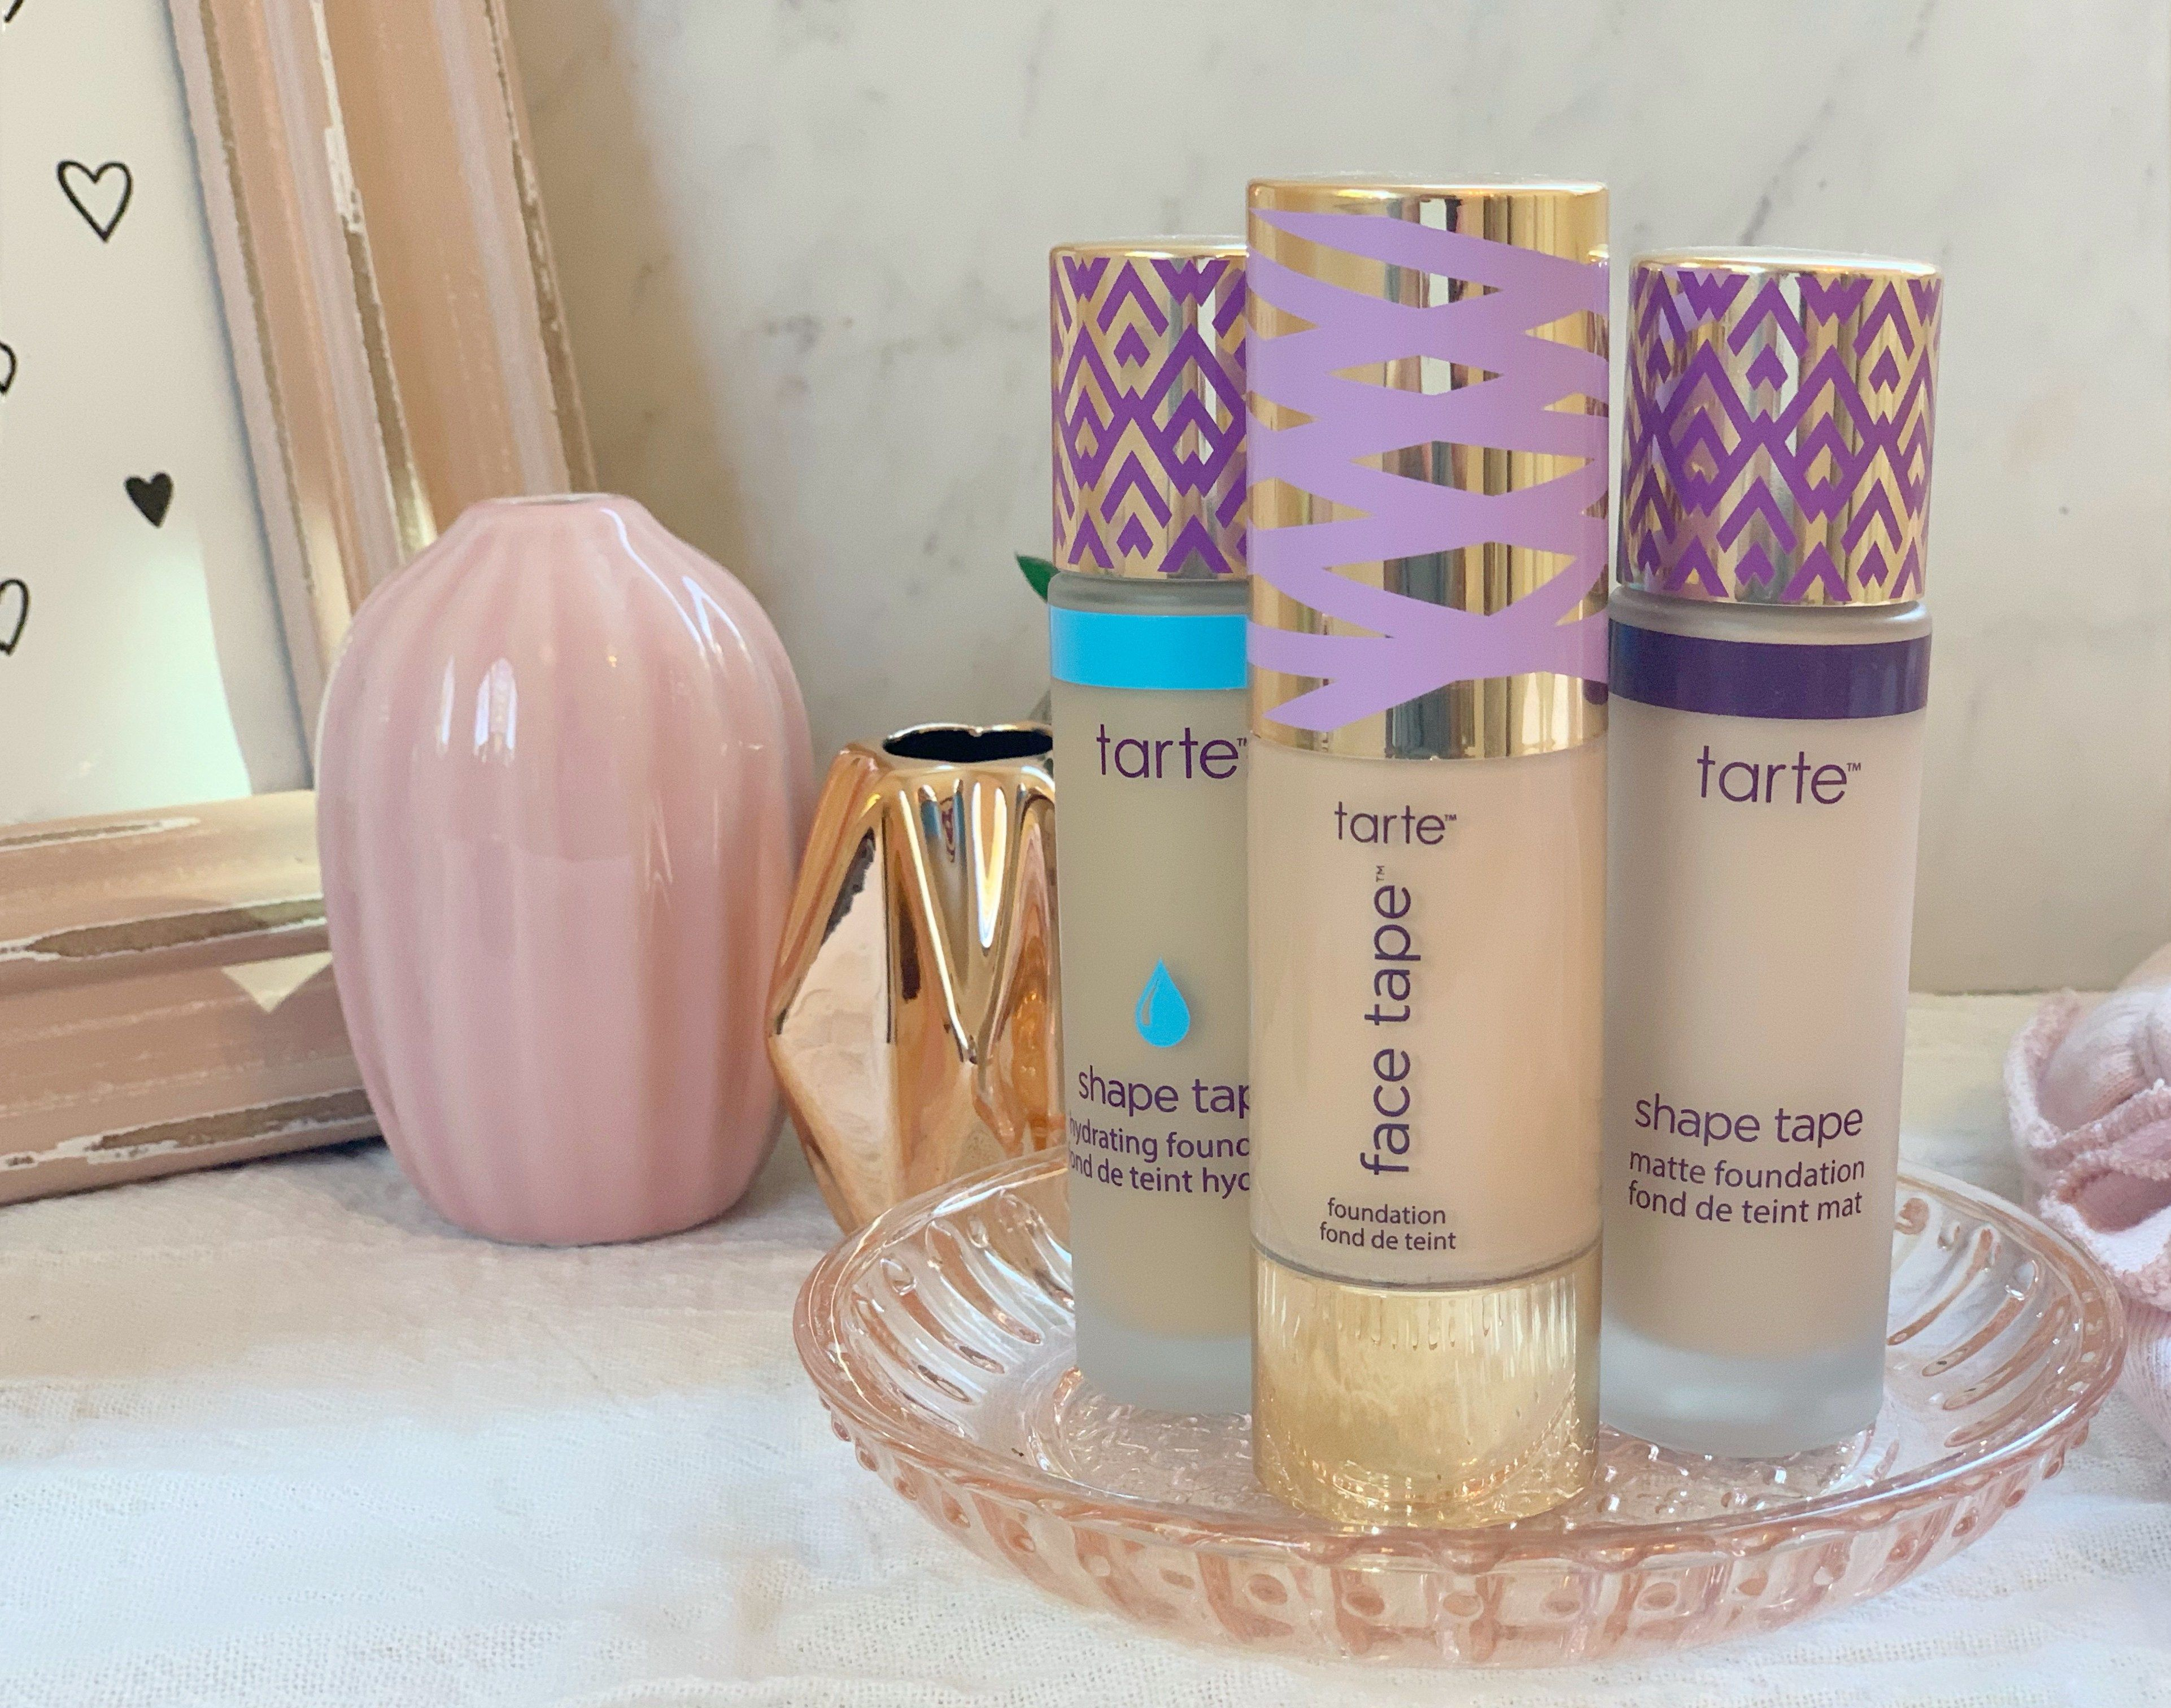 Tarte Face Tape Foundation Review Thoughts The Darling Dahlia In 2020 Tarte Foundation Reviews Foundation Reviews Tarte Foundation